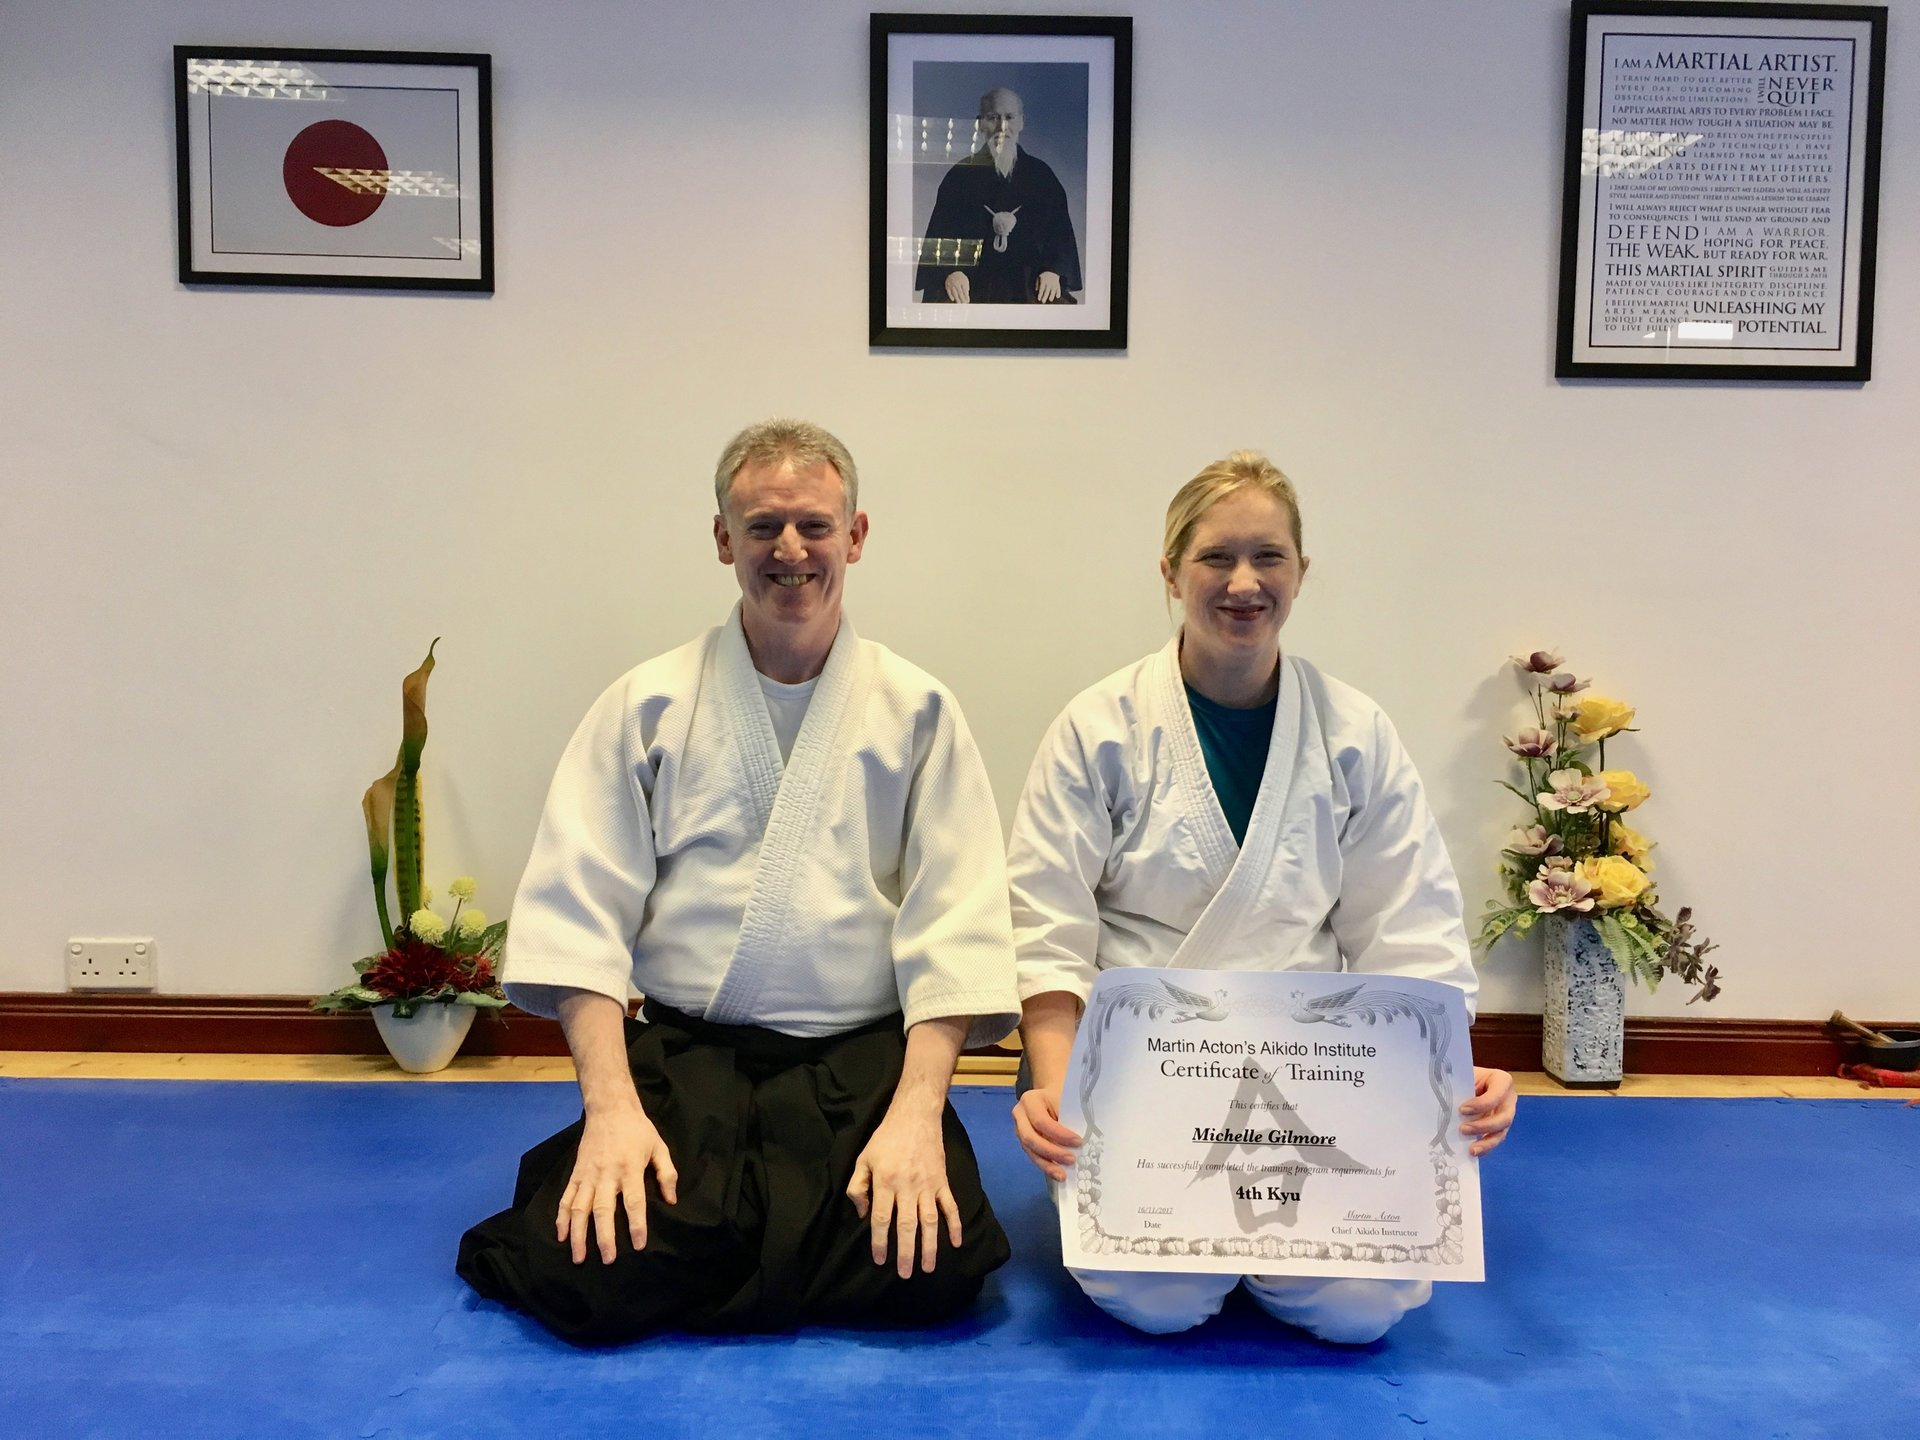 Michelle Gilmore receiving her Aikido 4th kyu certification with Martin Acton Sensei